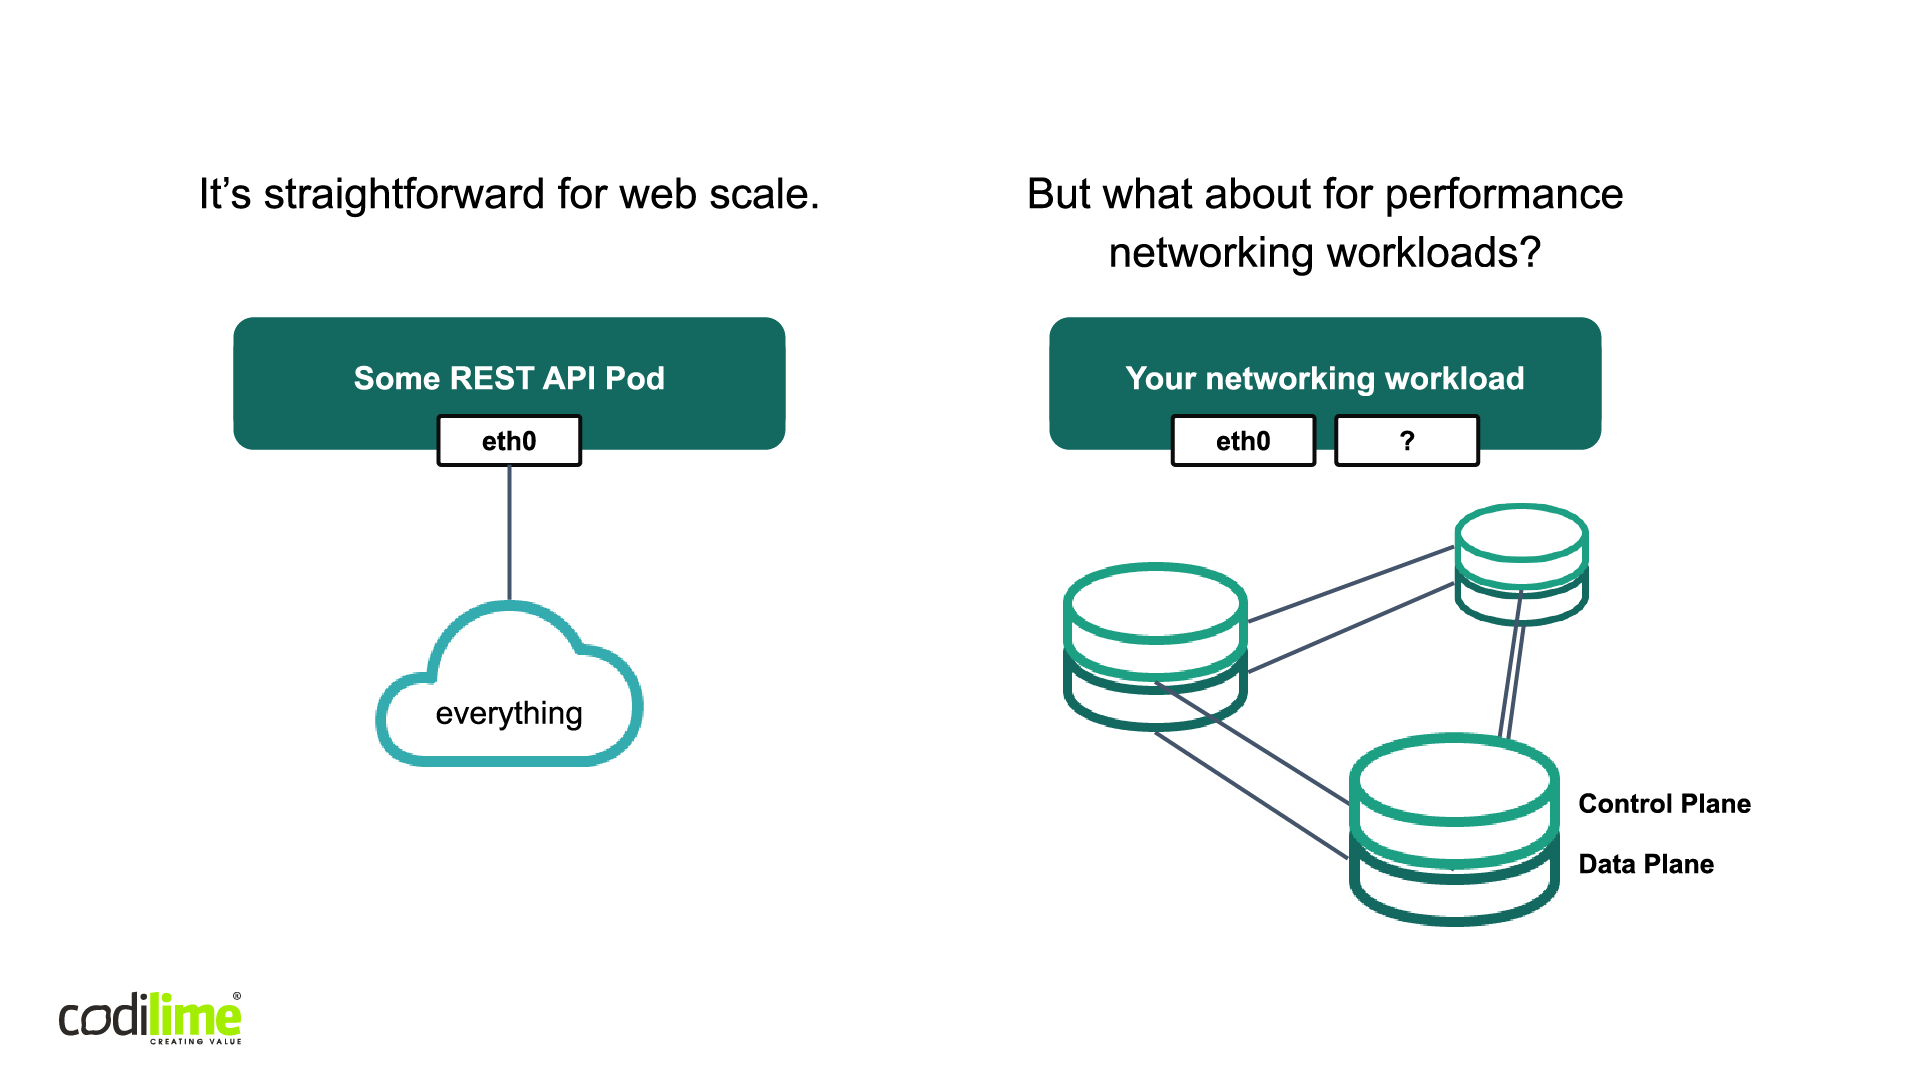 Networking for a simple app and for performance networking workloads